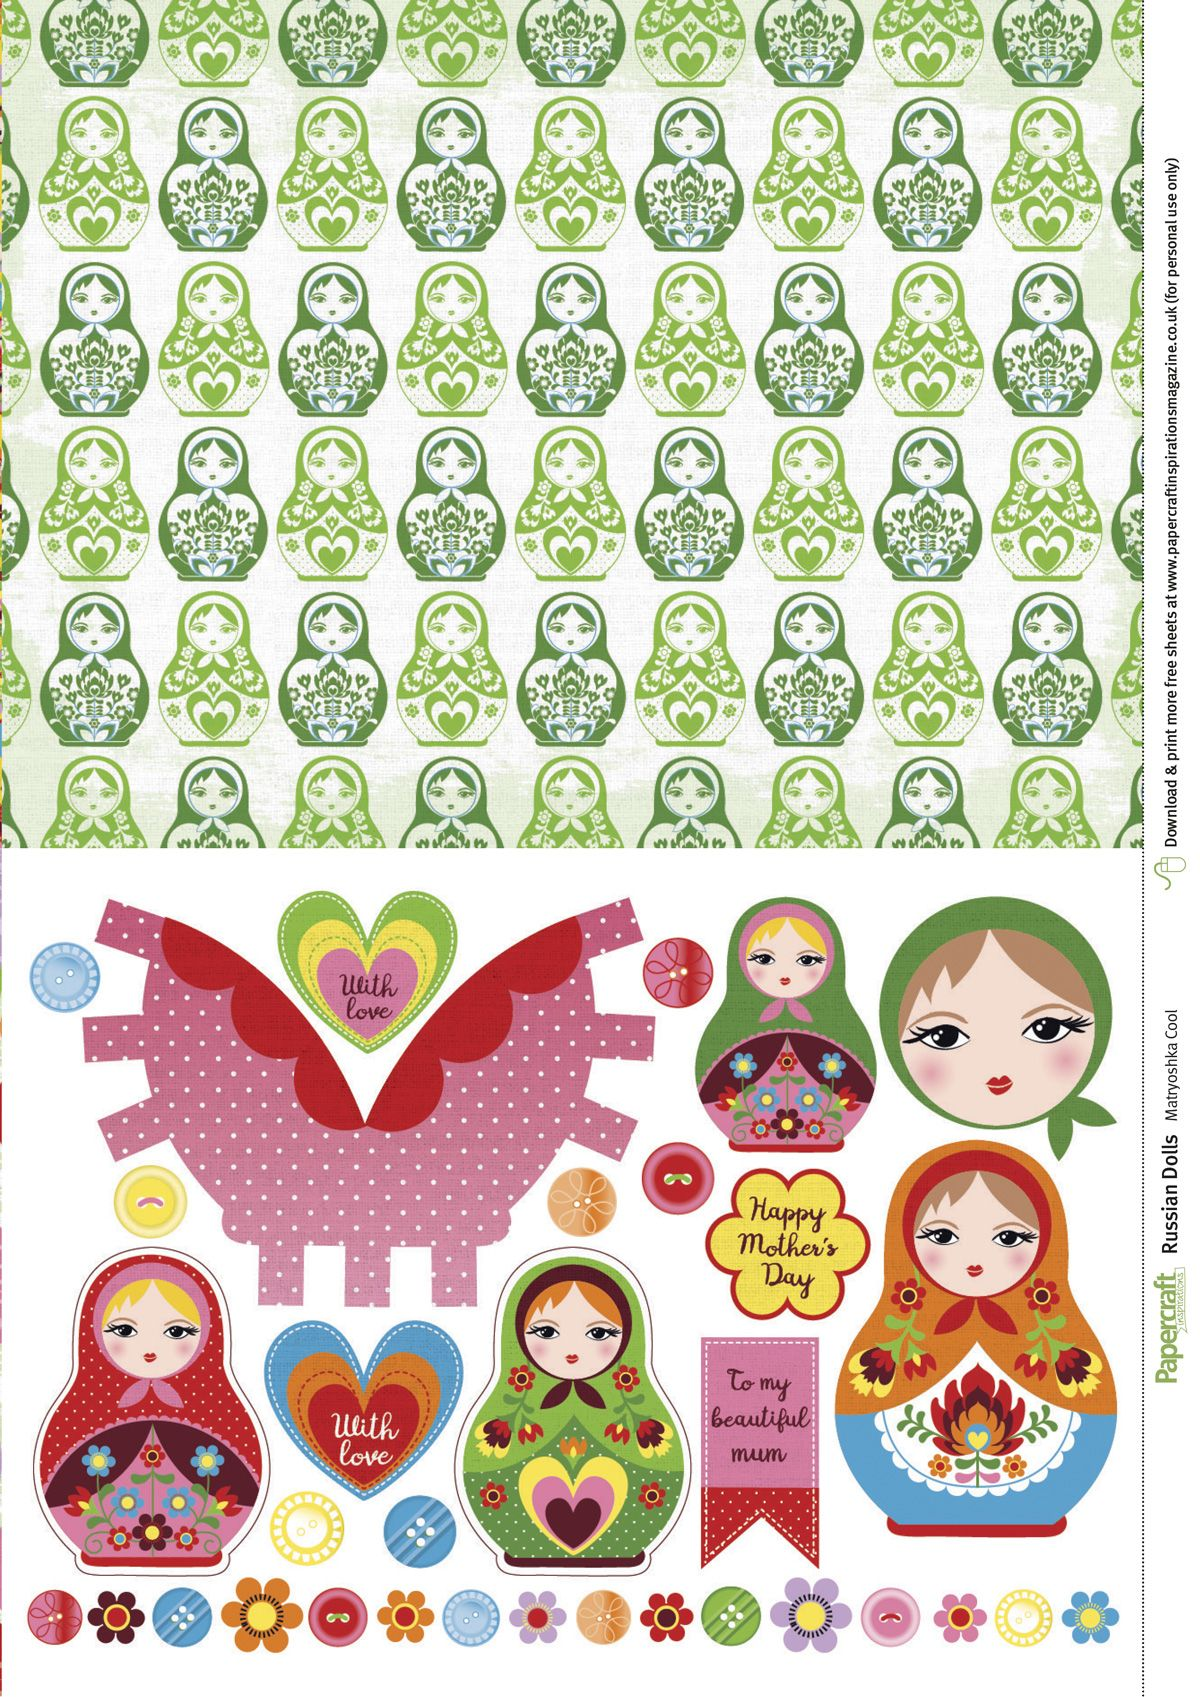 Free Printable Russian Doll Papers From Papercraft Inspirations 162 Papercraft Inspirations Free Scrapbook Paper Paper Crafts Paper Template Free